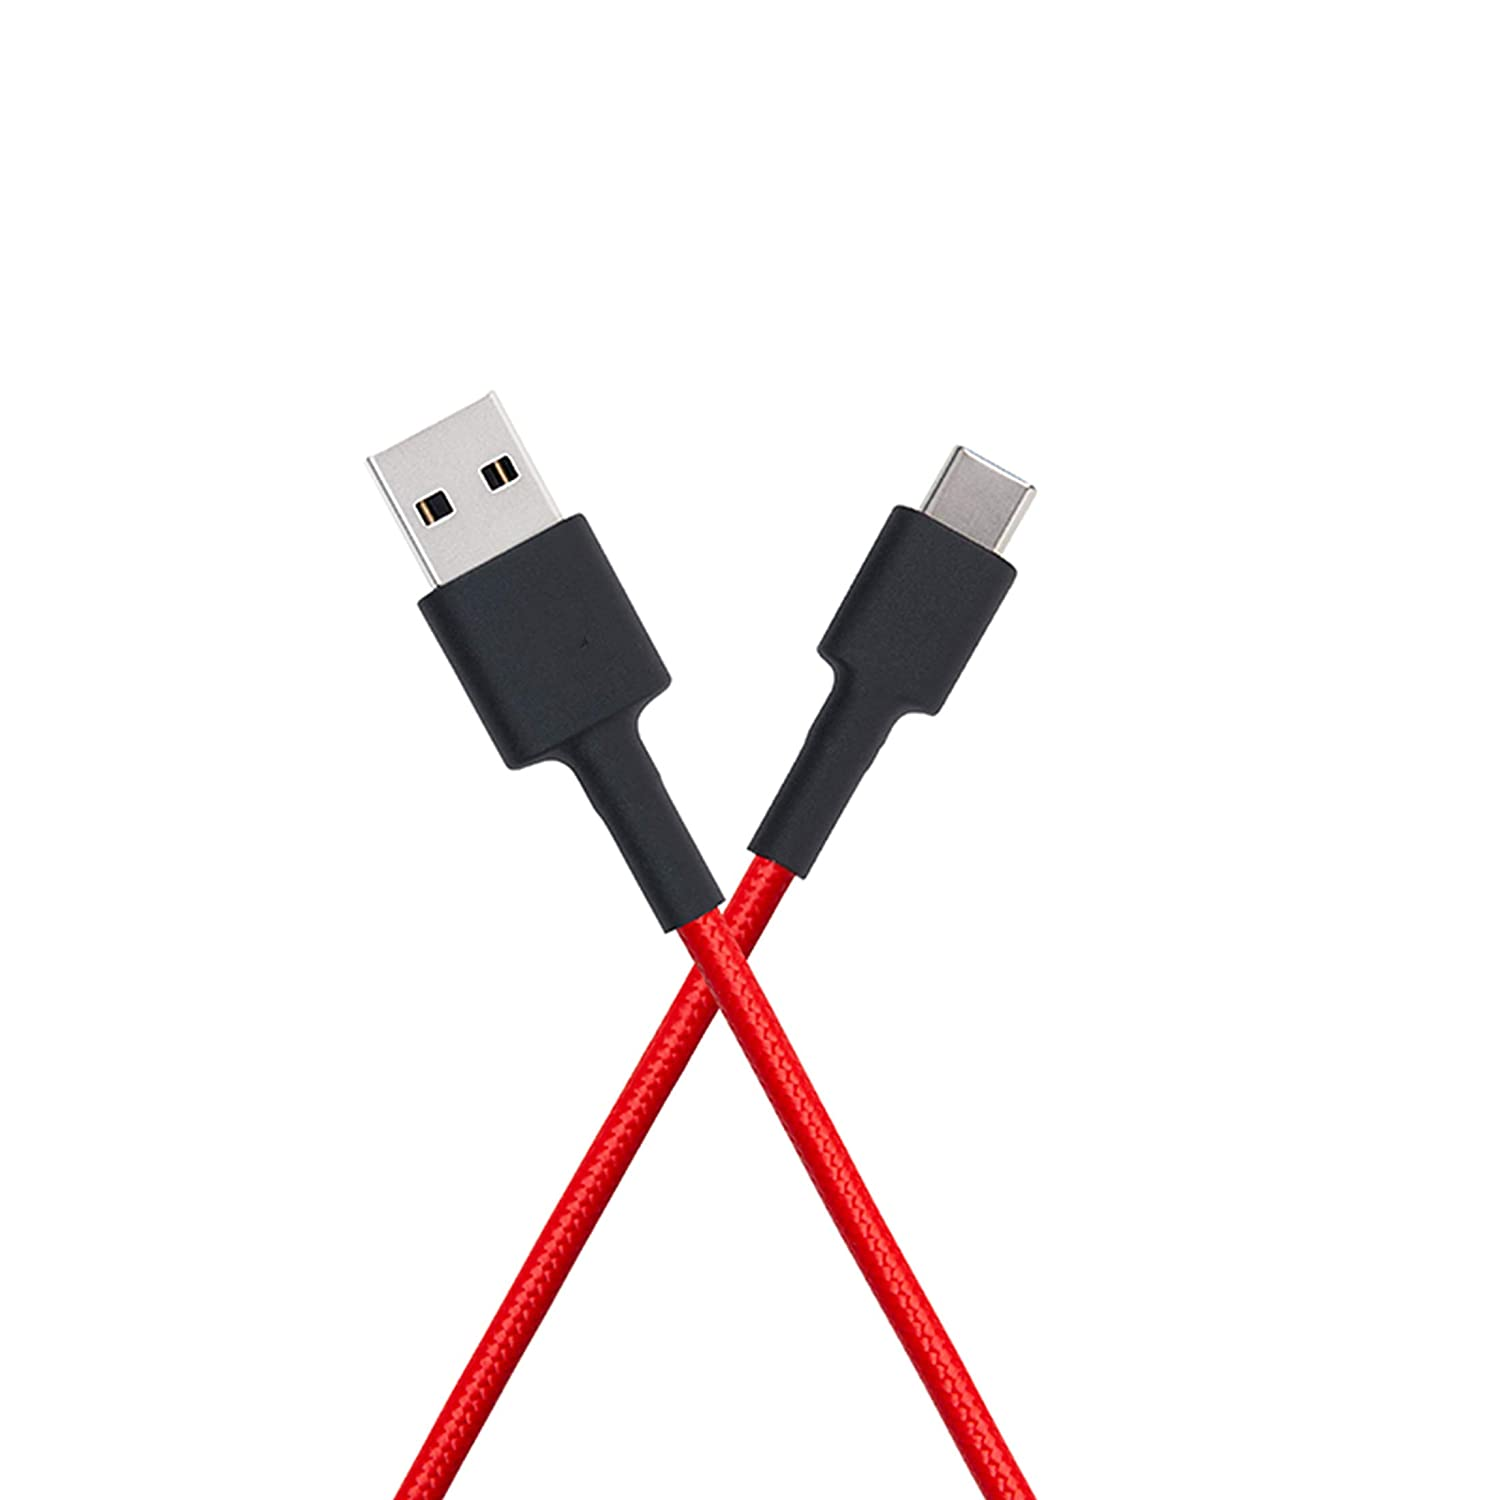 Mi Braided USB Type-C Cable (Red)